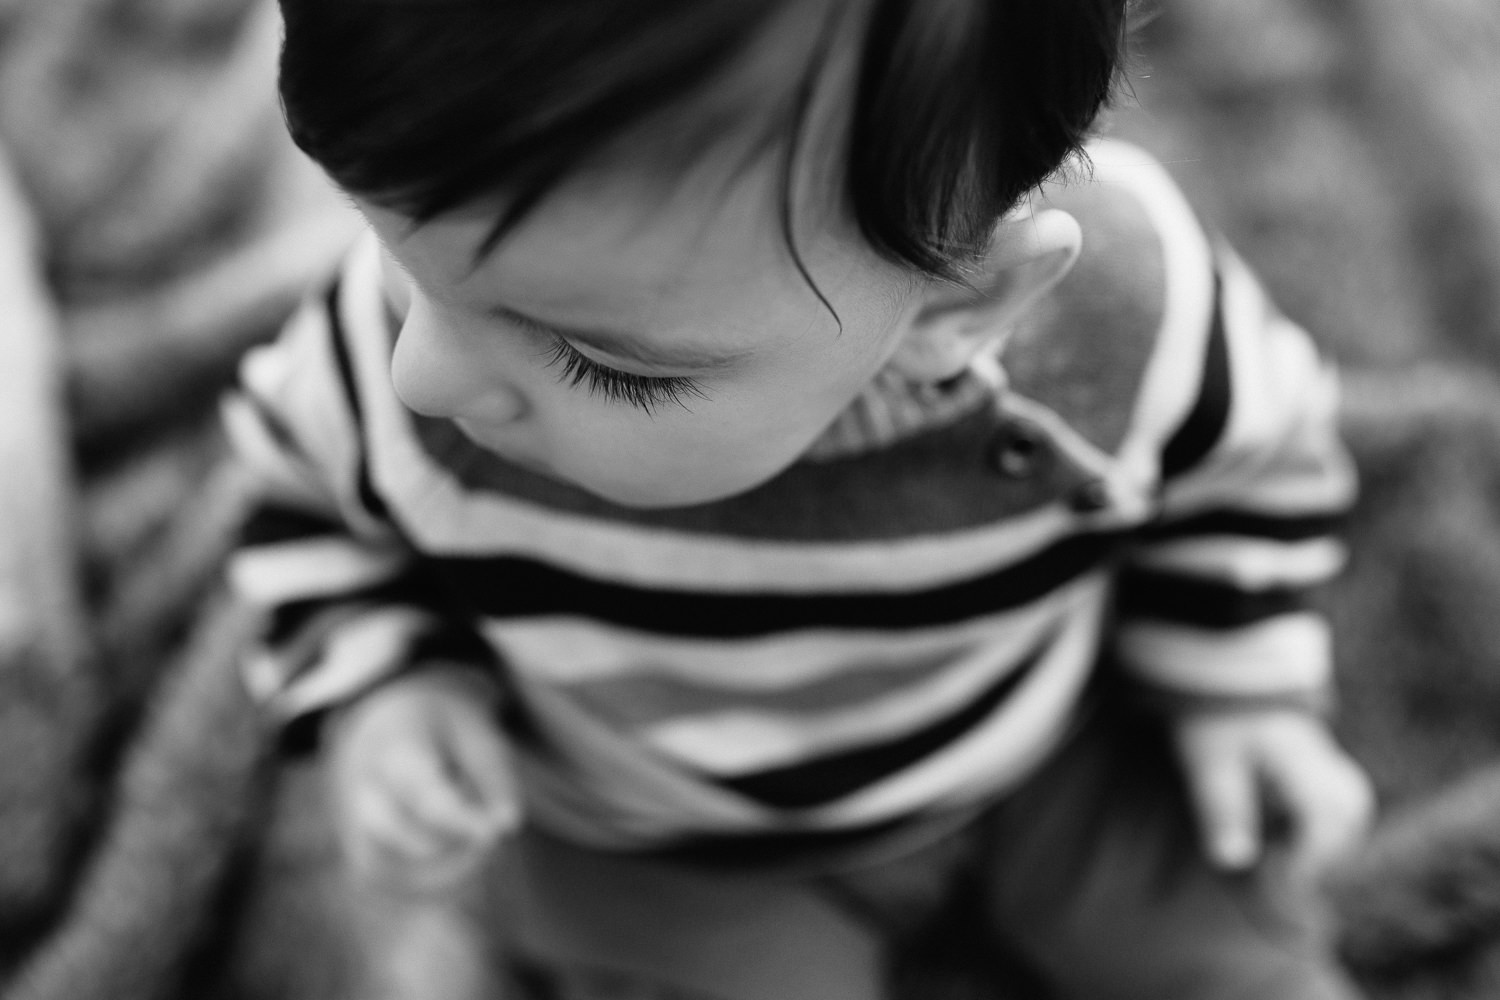 1 year old boy with dark hair and eyes wearing striped sweater sitting on blanket in outdoor path, close up of eyelashes - Stouffville Golden Hour Photos